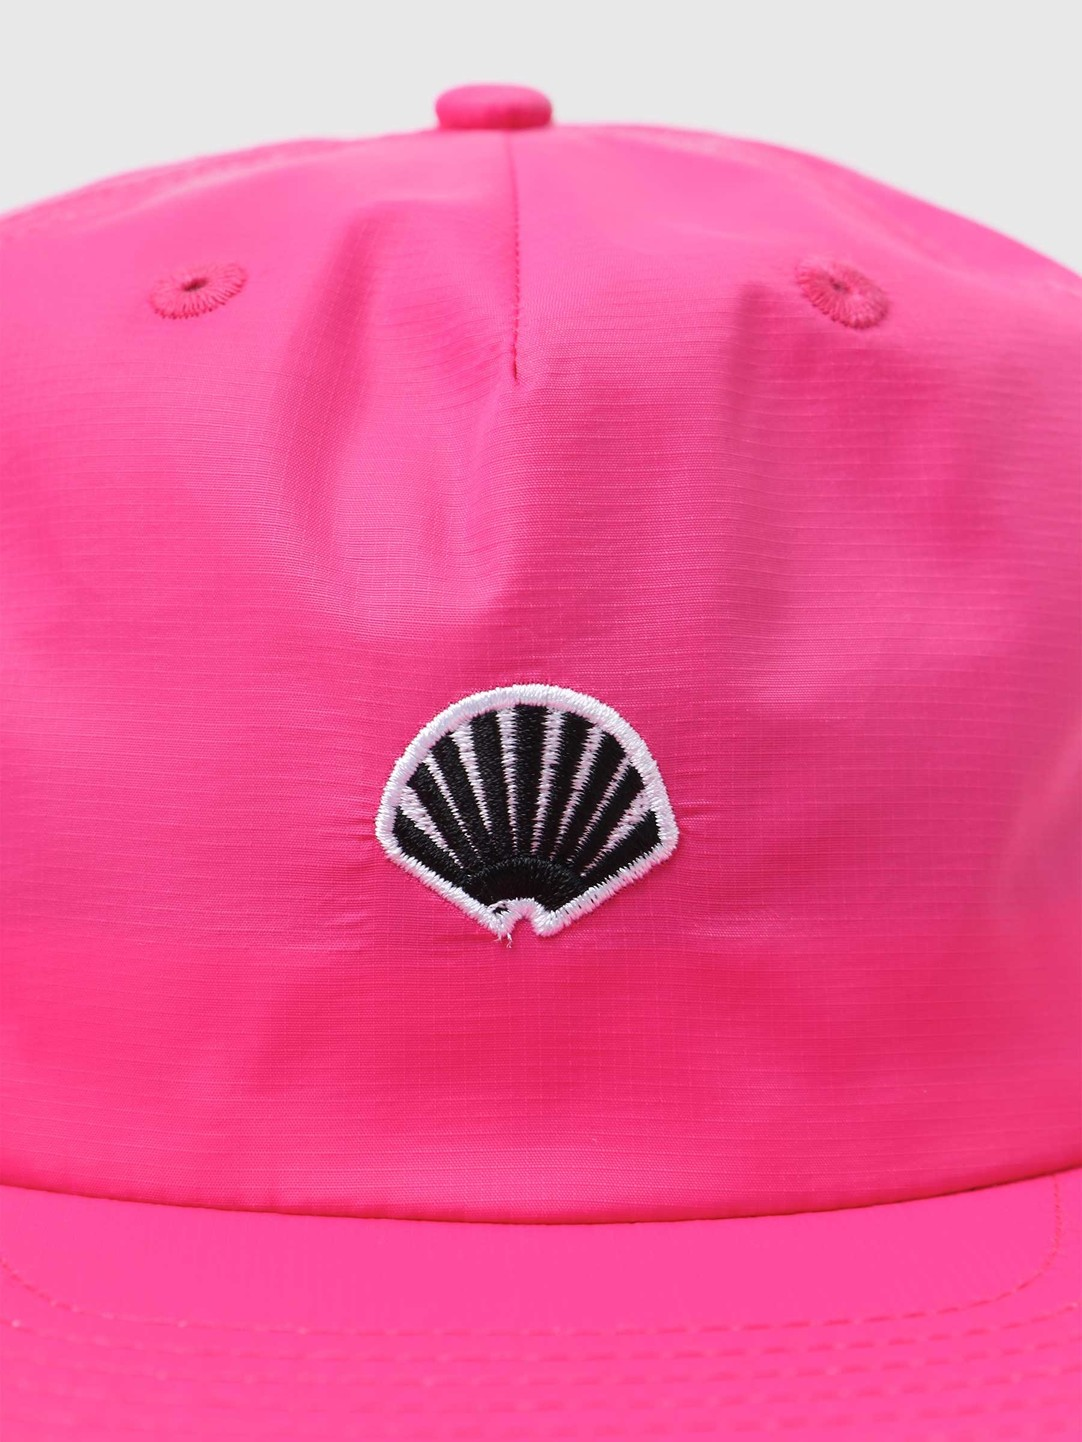 New Amsterdam Surf Association New Amsterdam Surf association Logo Patched Cap Magenta 2021076